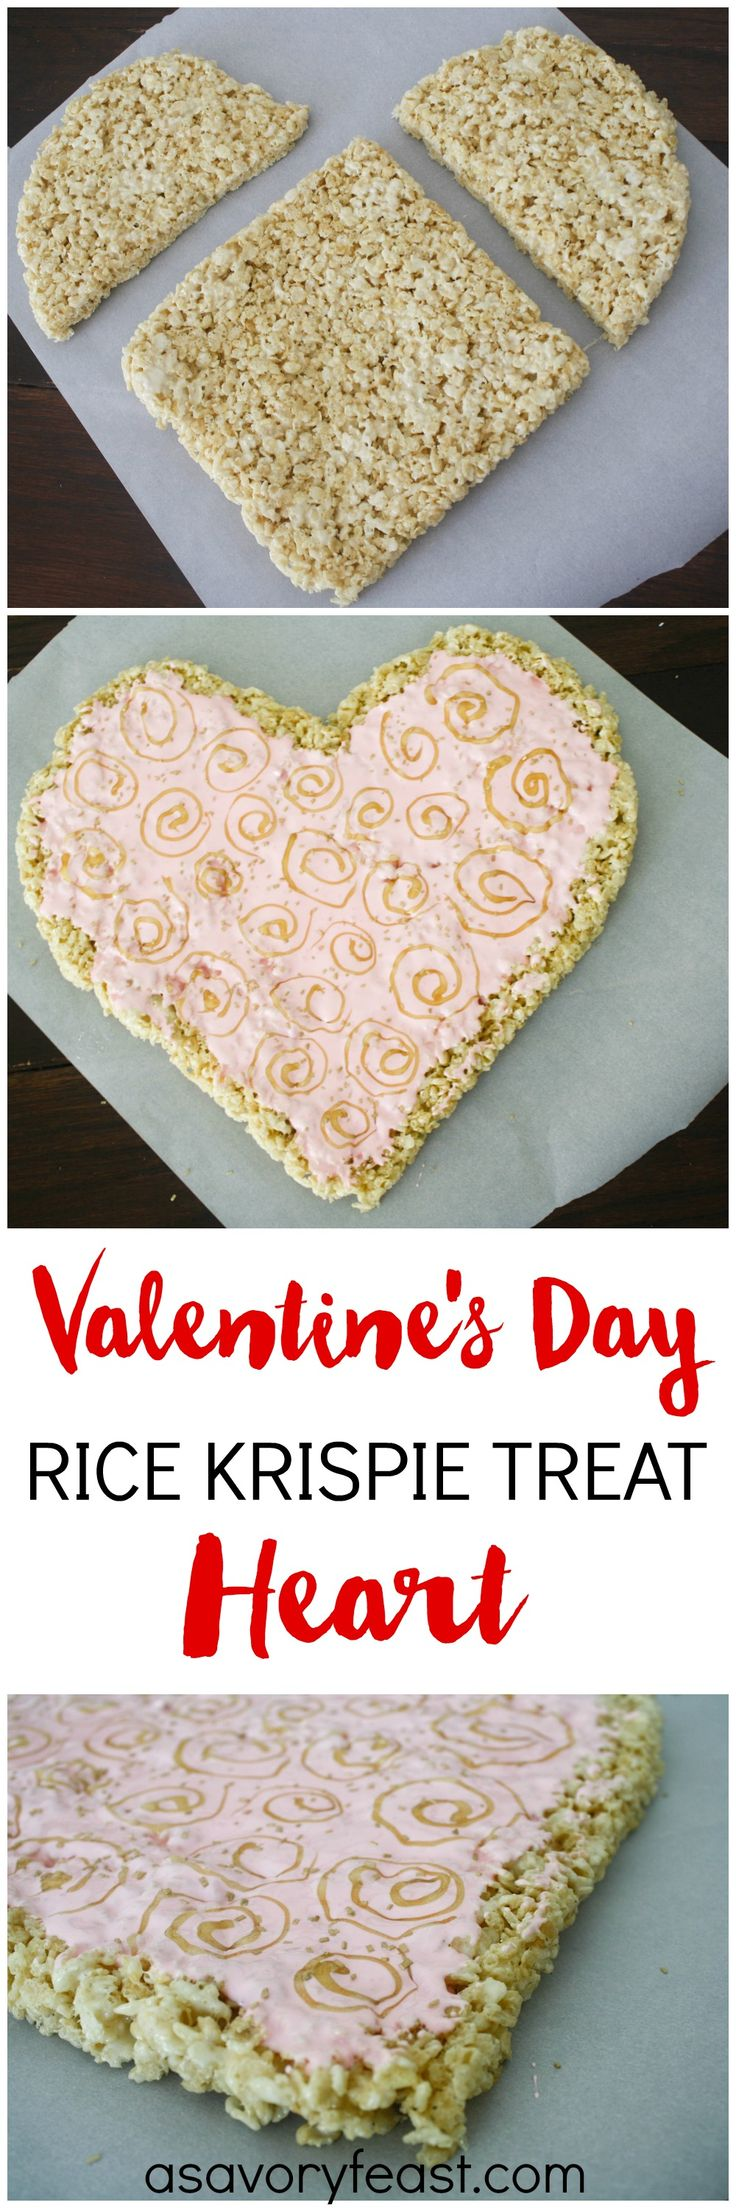 Treat someone special to this beautiful Valentine's Day Rice Krispies Treat Heart! It's a fun treat that is so easy to make. The classic Rice Krispies Treat recipe gets a romantic upgrade for the holiday. | Rice Krispies Treat Ideas | Rice Krispie Treat | #dessert